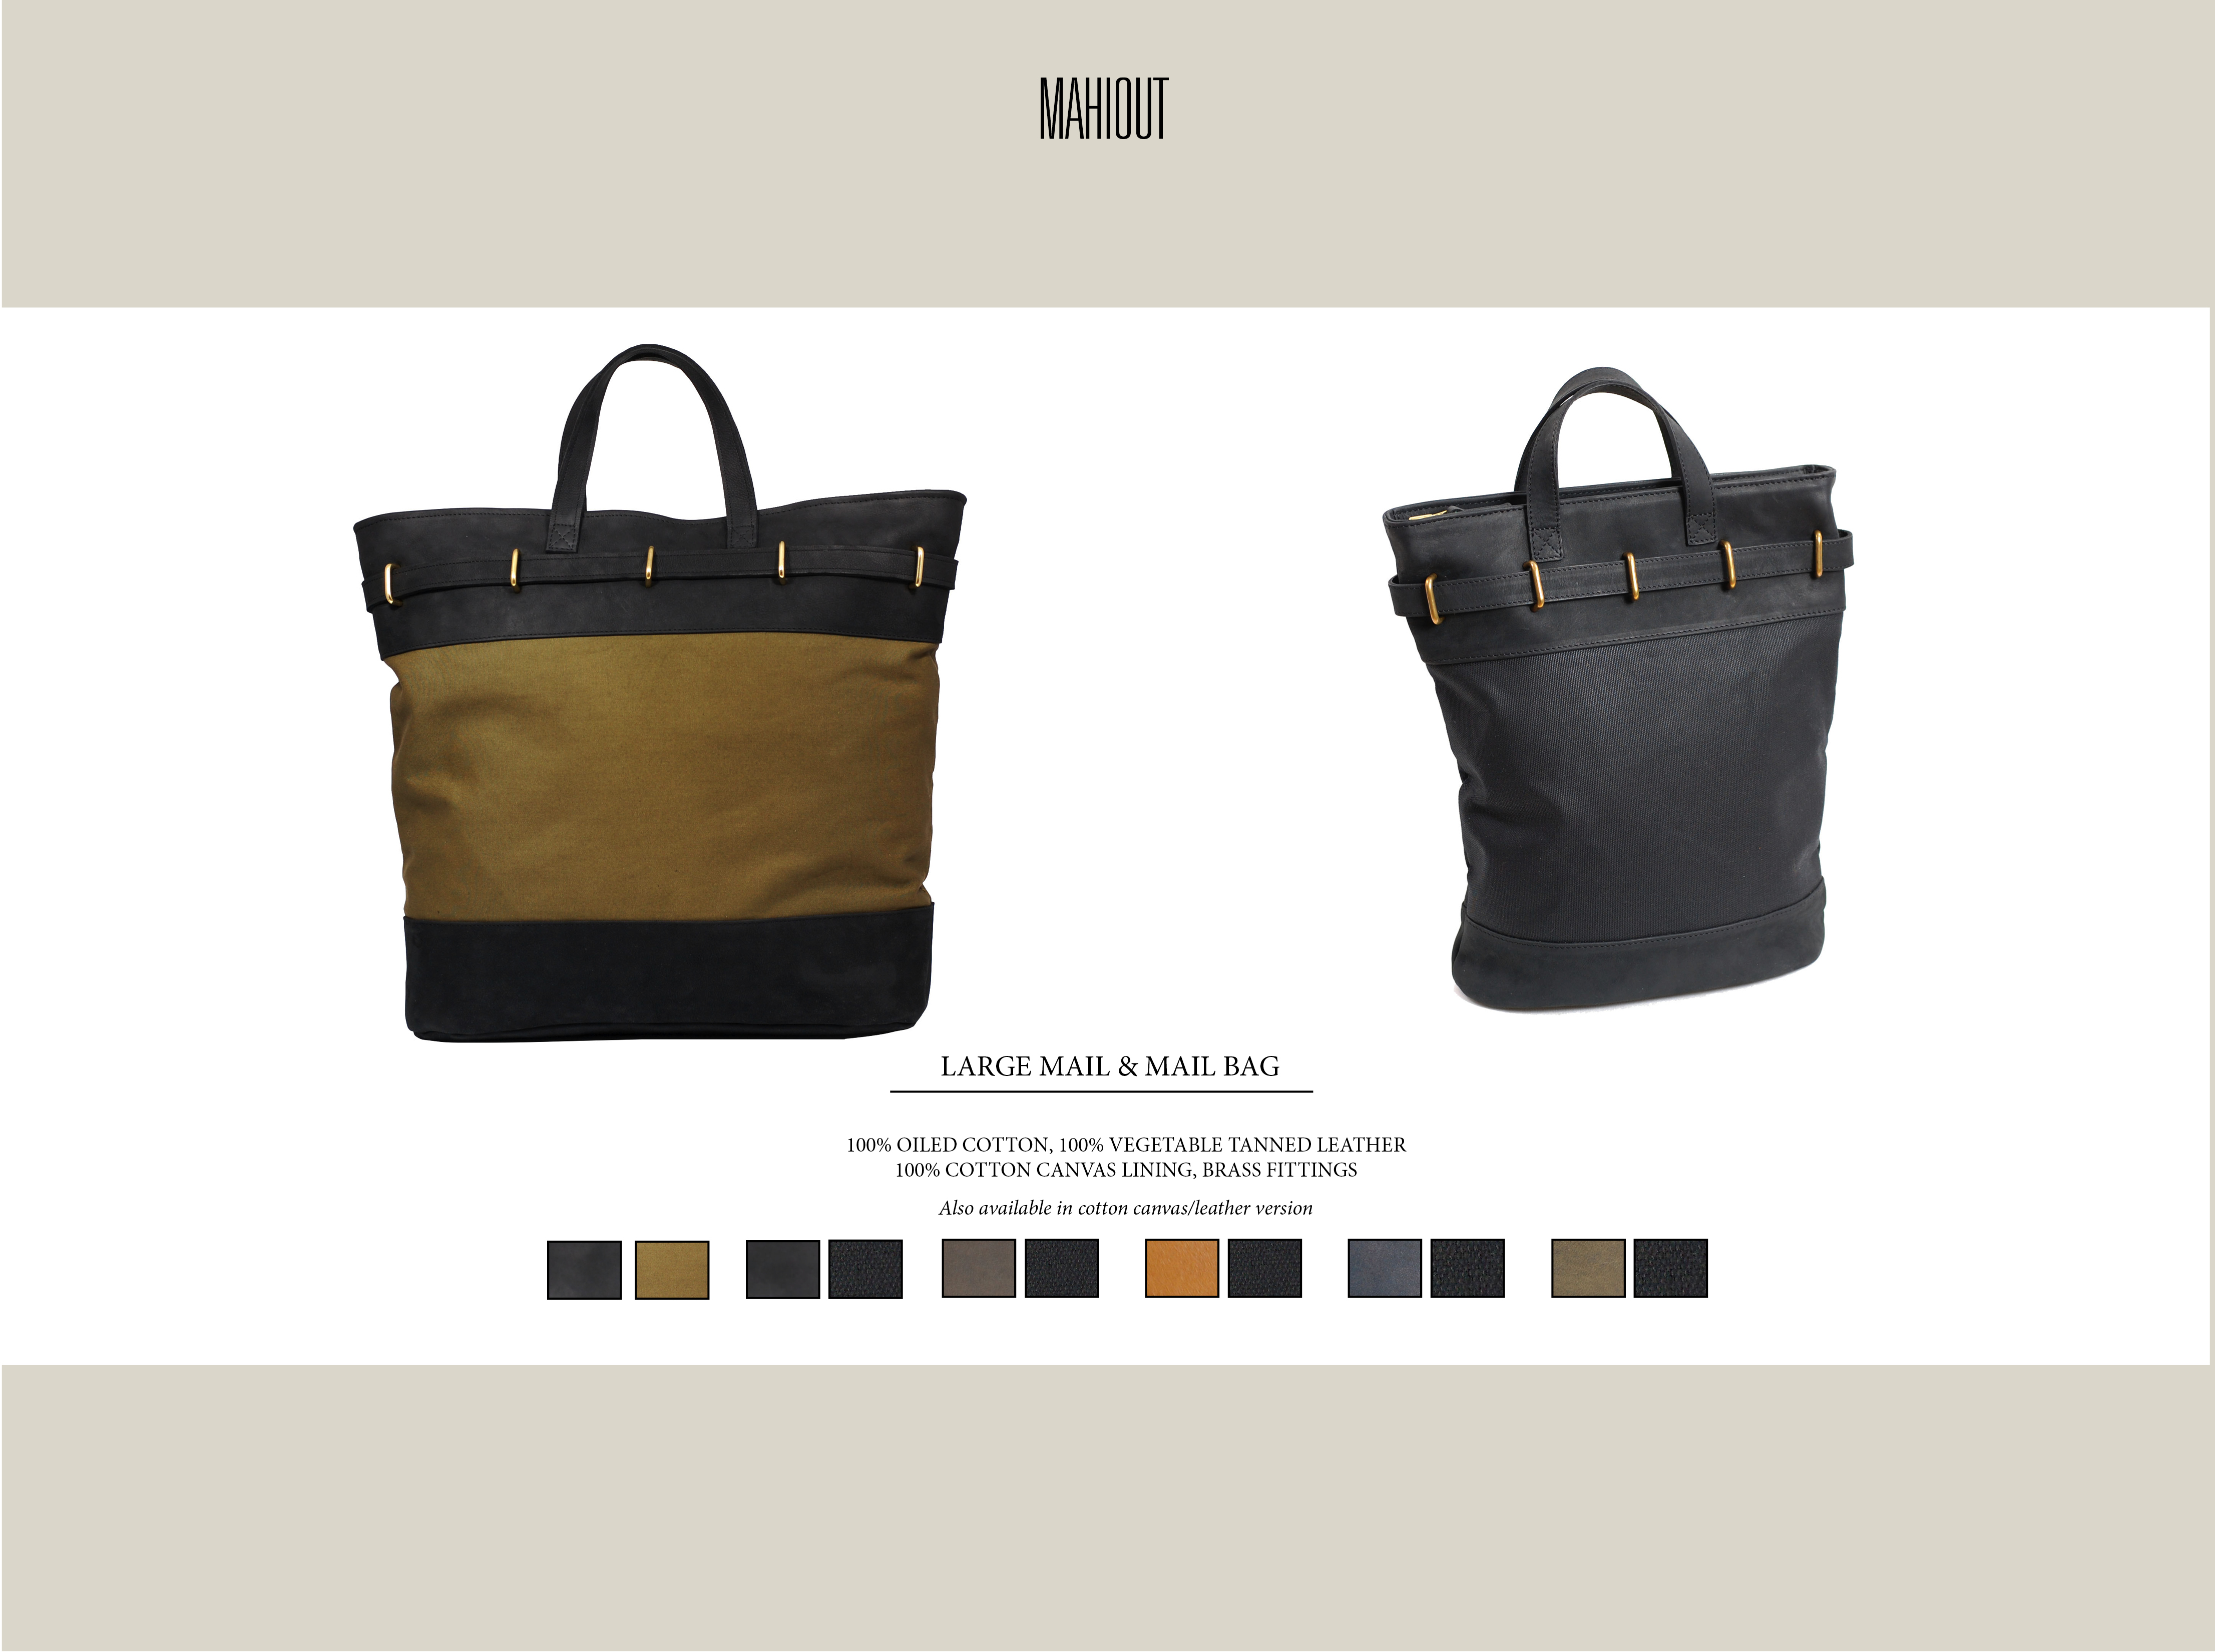 mahiout mail bag in leather and canvas